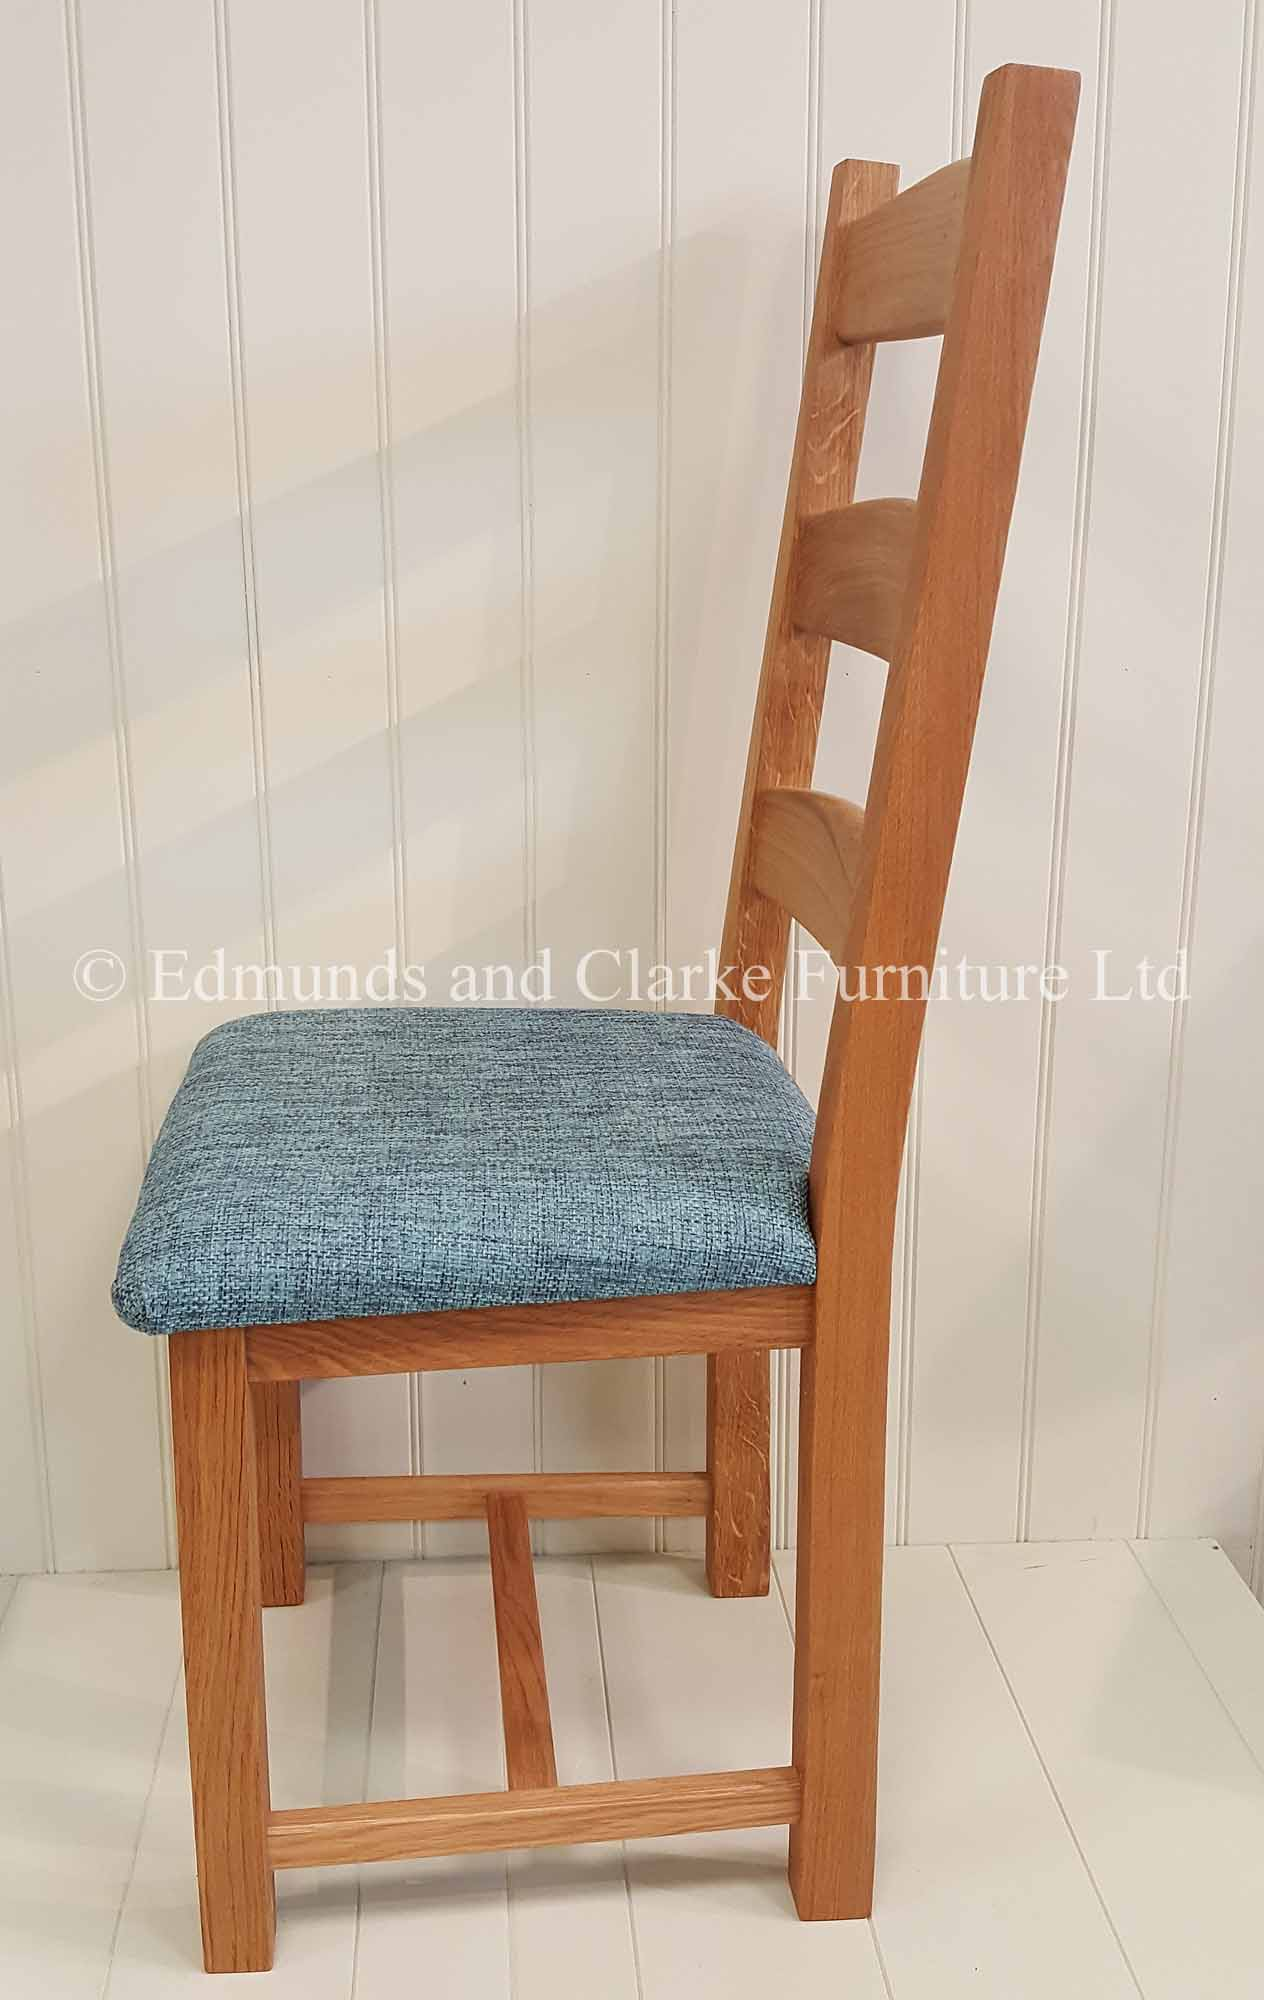 Provence oak dining chair, choice of leather or fabric seat pads